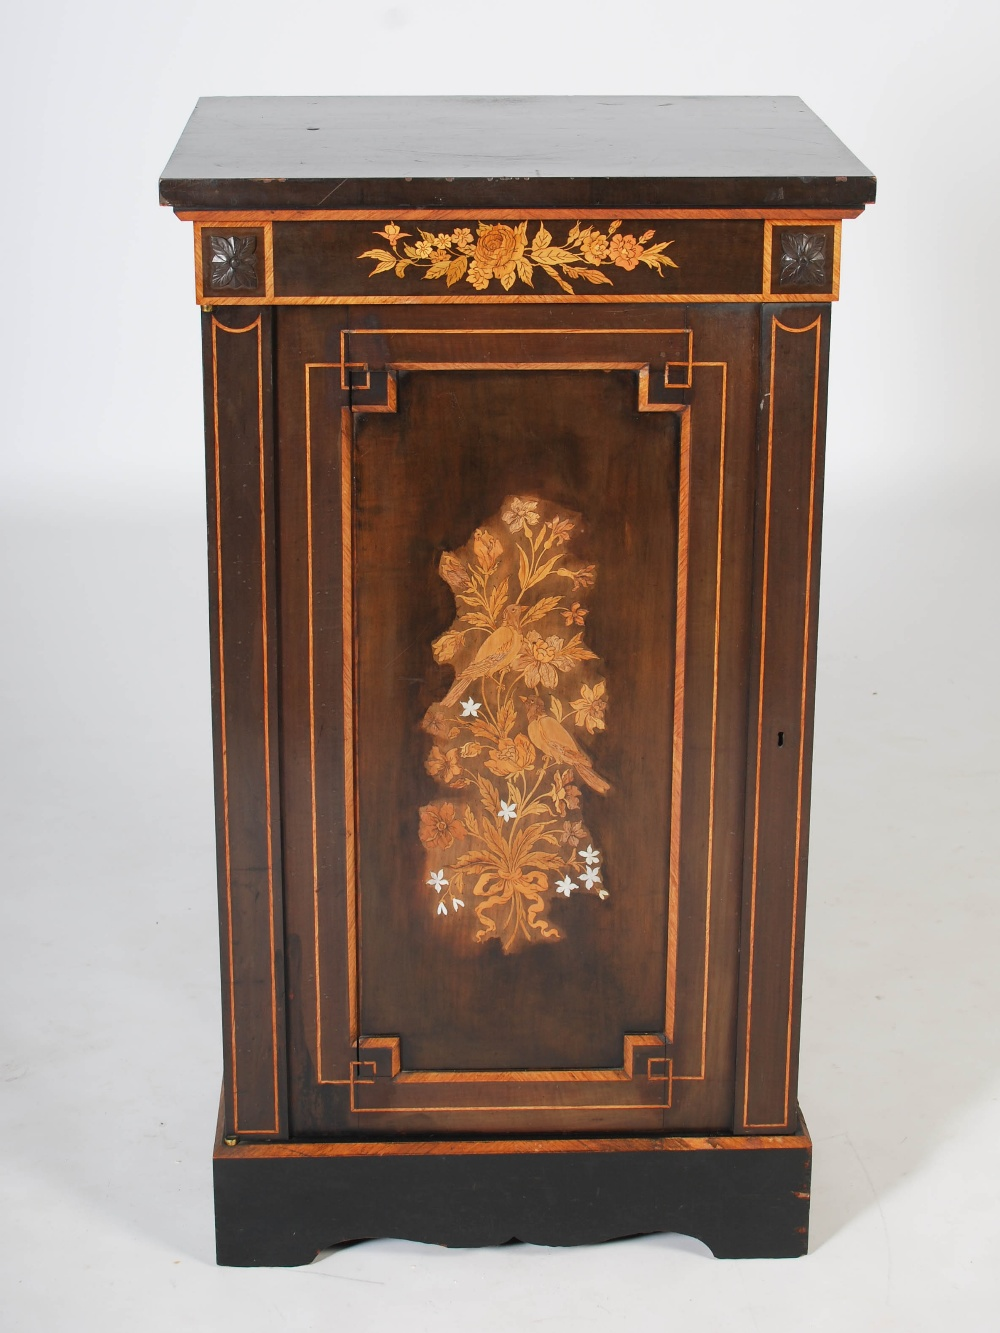 Lot 95 - A Victorian ebonised and marquetry inlaid side cabinet, the rectangular top above a frieze inlaid